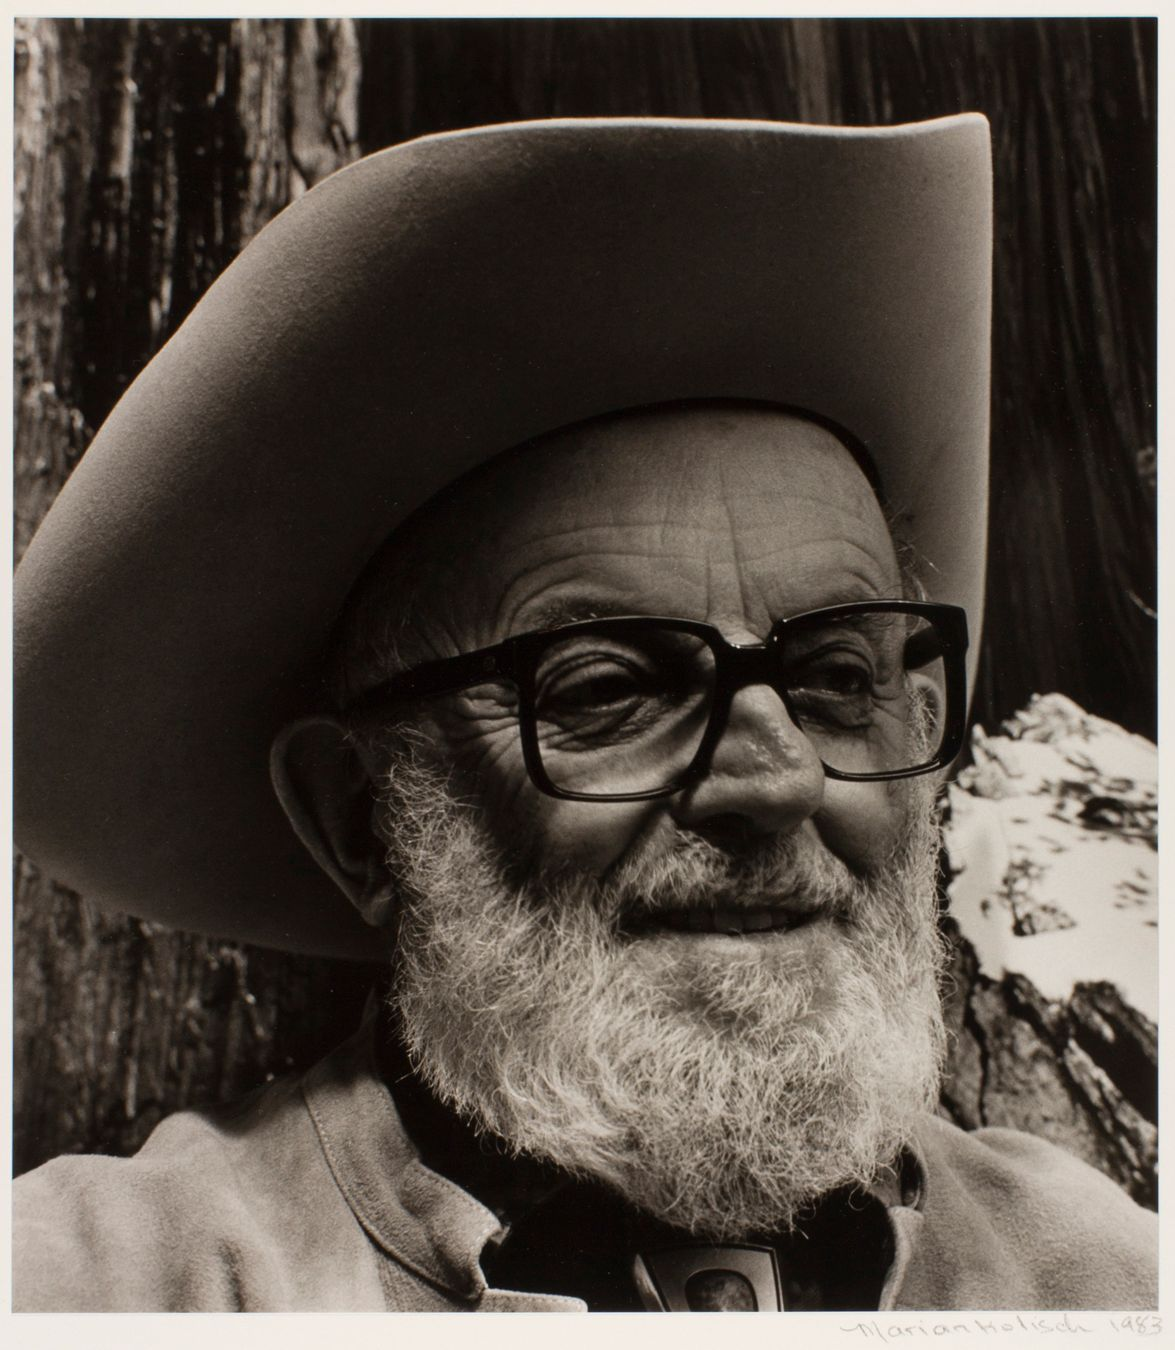 Ansel Adams, Marian Wood Kolisch, gelatin silver print, image/sheet: 11 3/8 x 10 1/16 inches. A black and white portrait of Ansel Adams, an older white man with a gray beard, wearing glasses and a broad brimmed hat. The photo shows the head and shoulders of Adams, looking slightly to the right. He wears dark, square framed glasses. His face is lined and his nose somewhat crooked. He wears a white beard and a slight smile with lips parted. A cowboy hat sits pushed back on his head creating a shadow near the crown of his head. His light-colored, collarless jacket is just visible. He is posed in front of the textured bark of a tree.